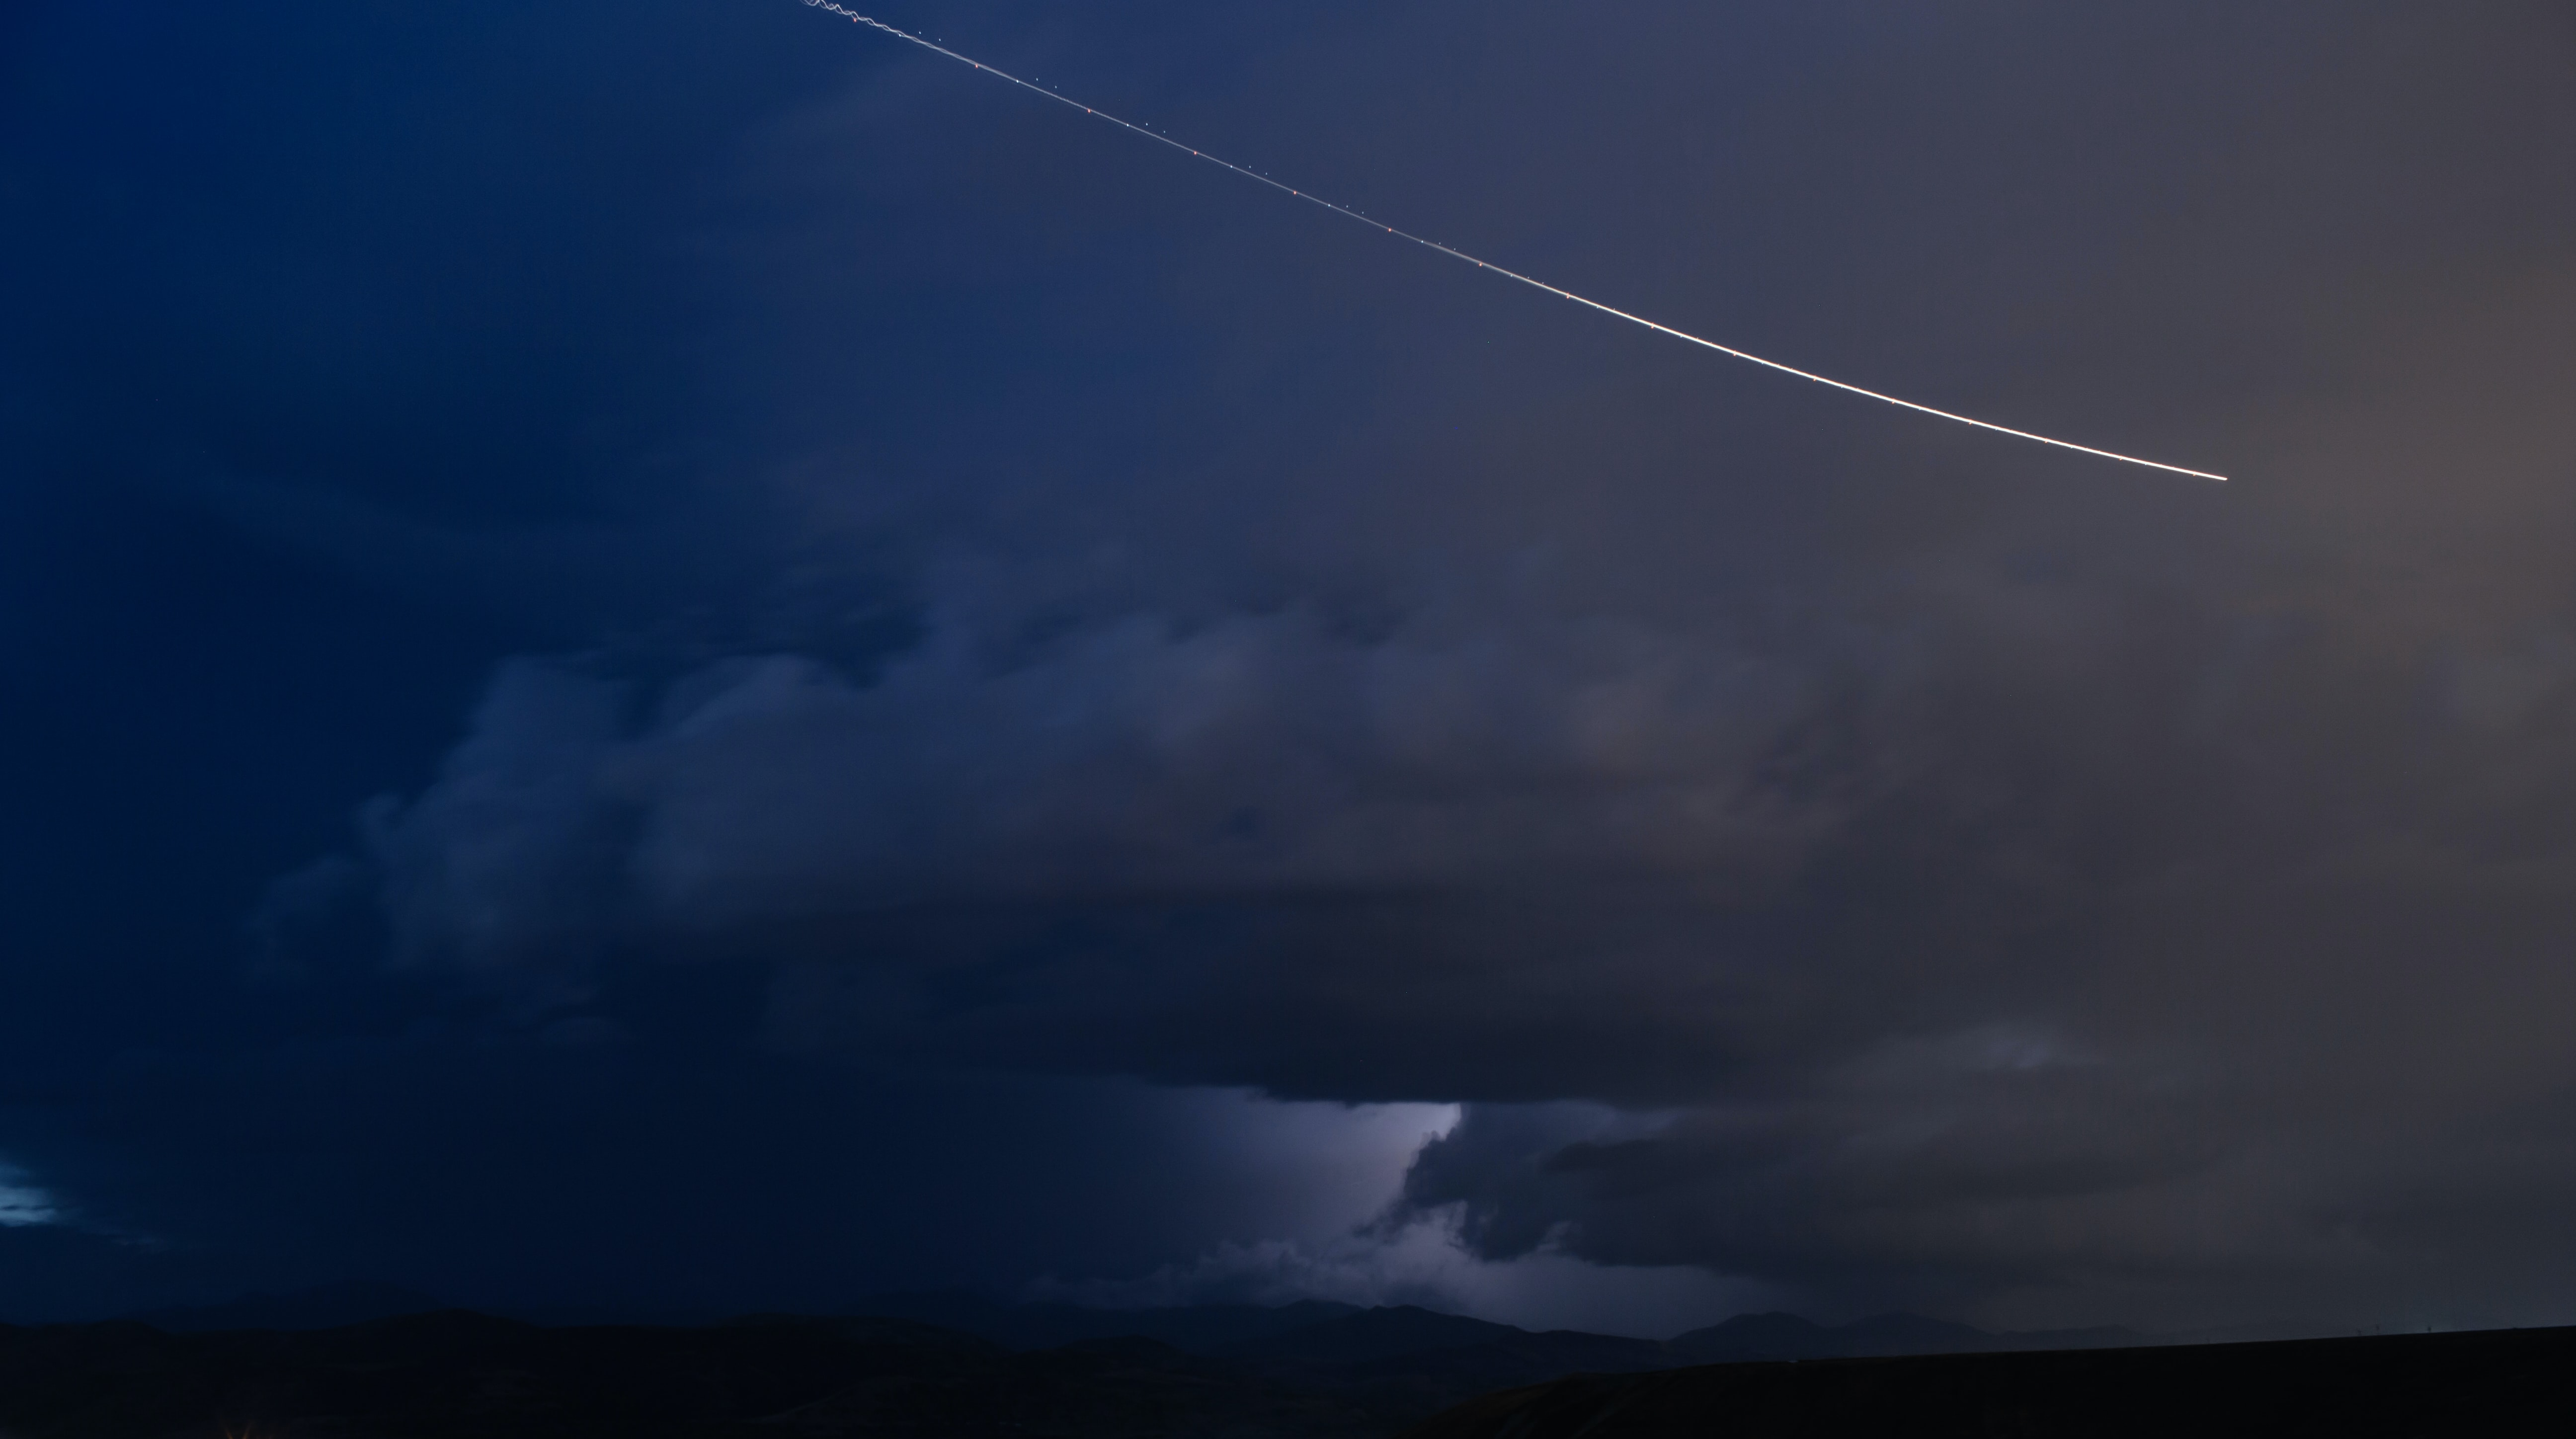 jet flying on sky with dark clouds